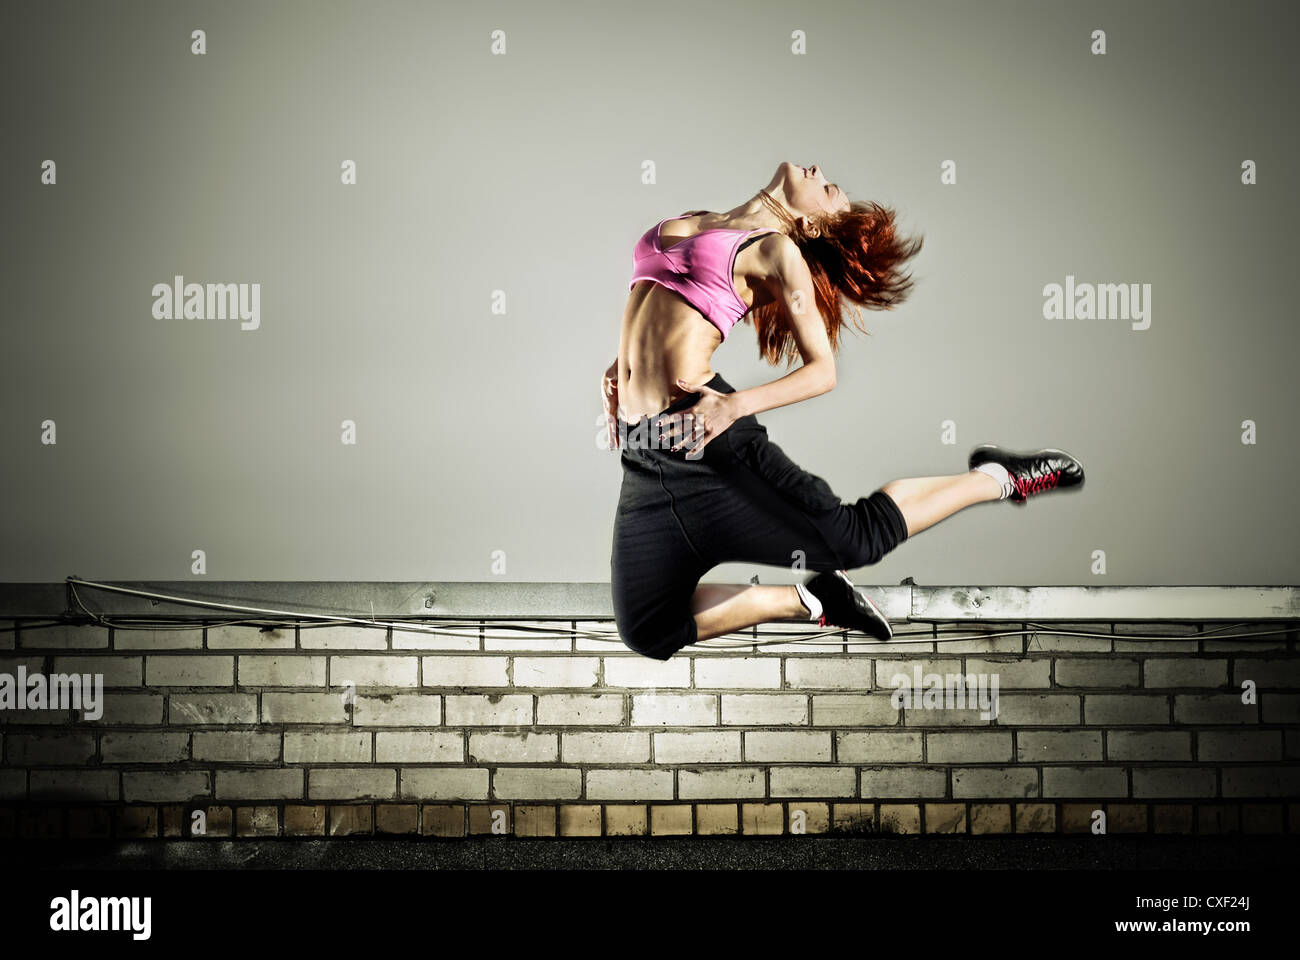 girl jumping on the roof - Stock Image